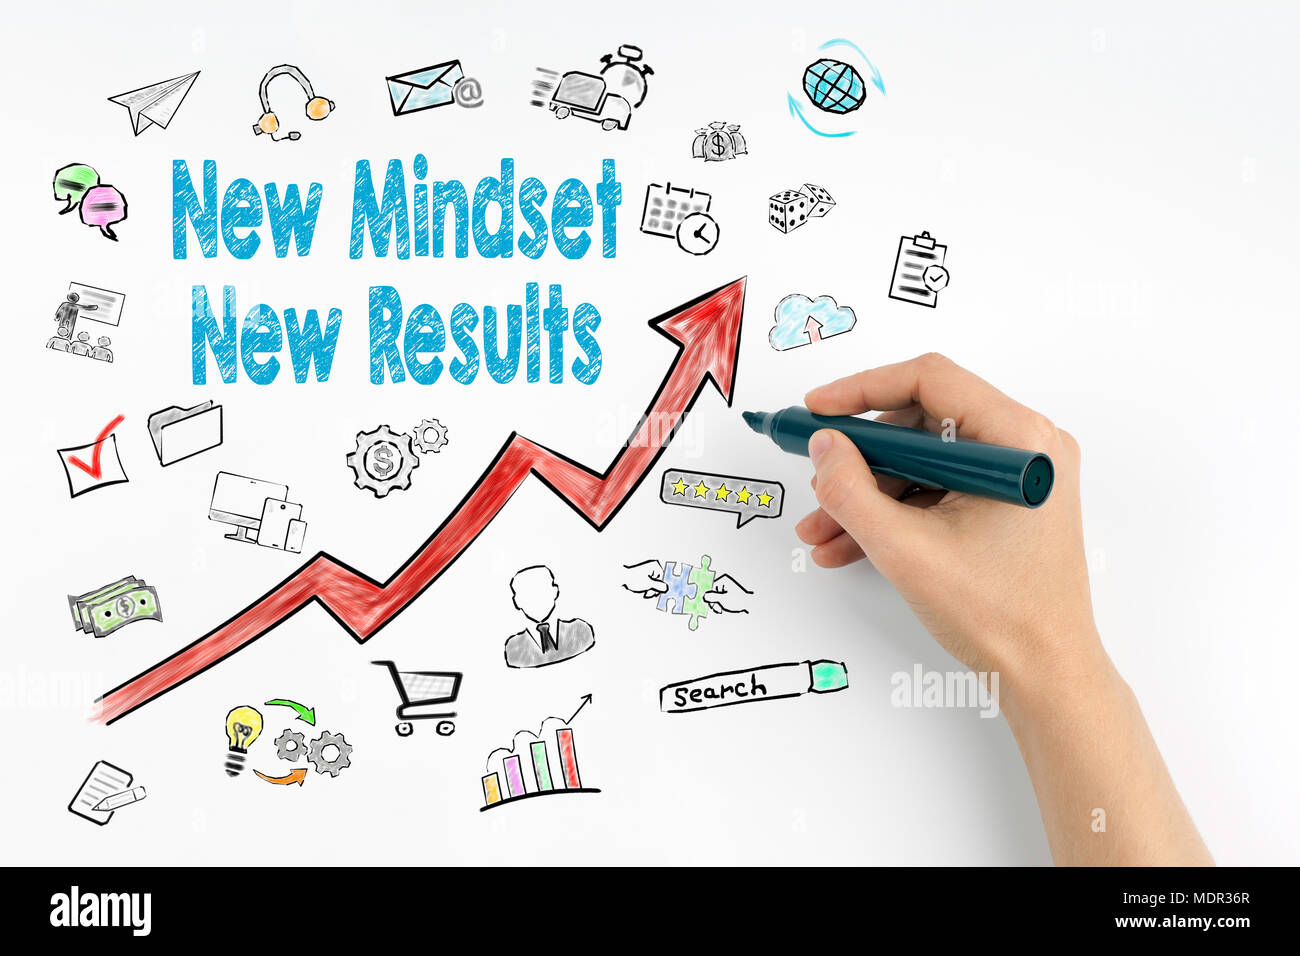 New Mindset New Results Concept. Hand with marker writing - Stock Image